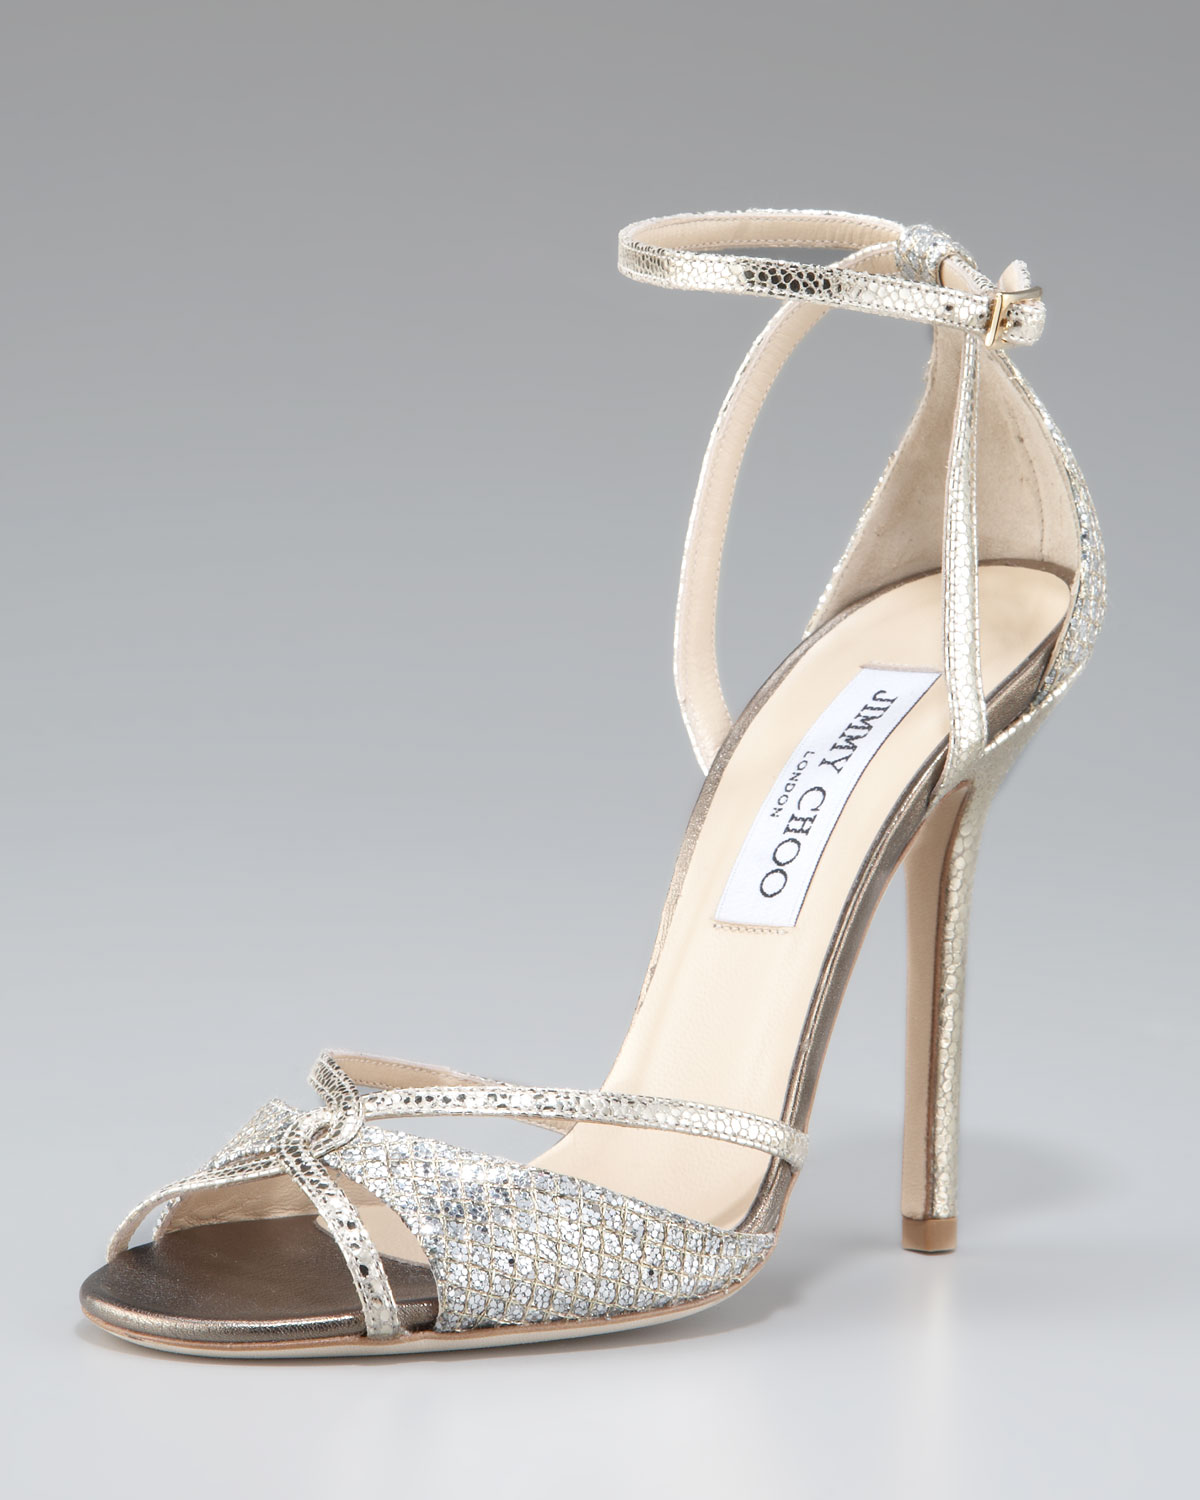 Jimmy Choo Metallic Ankle-Strap Wedges professional cheap price lTAReIky